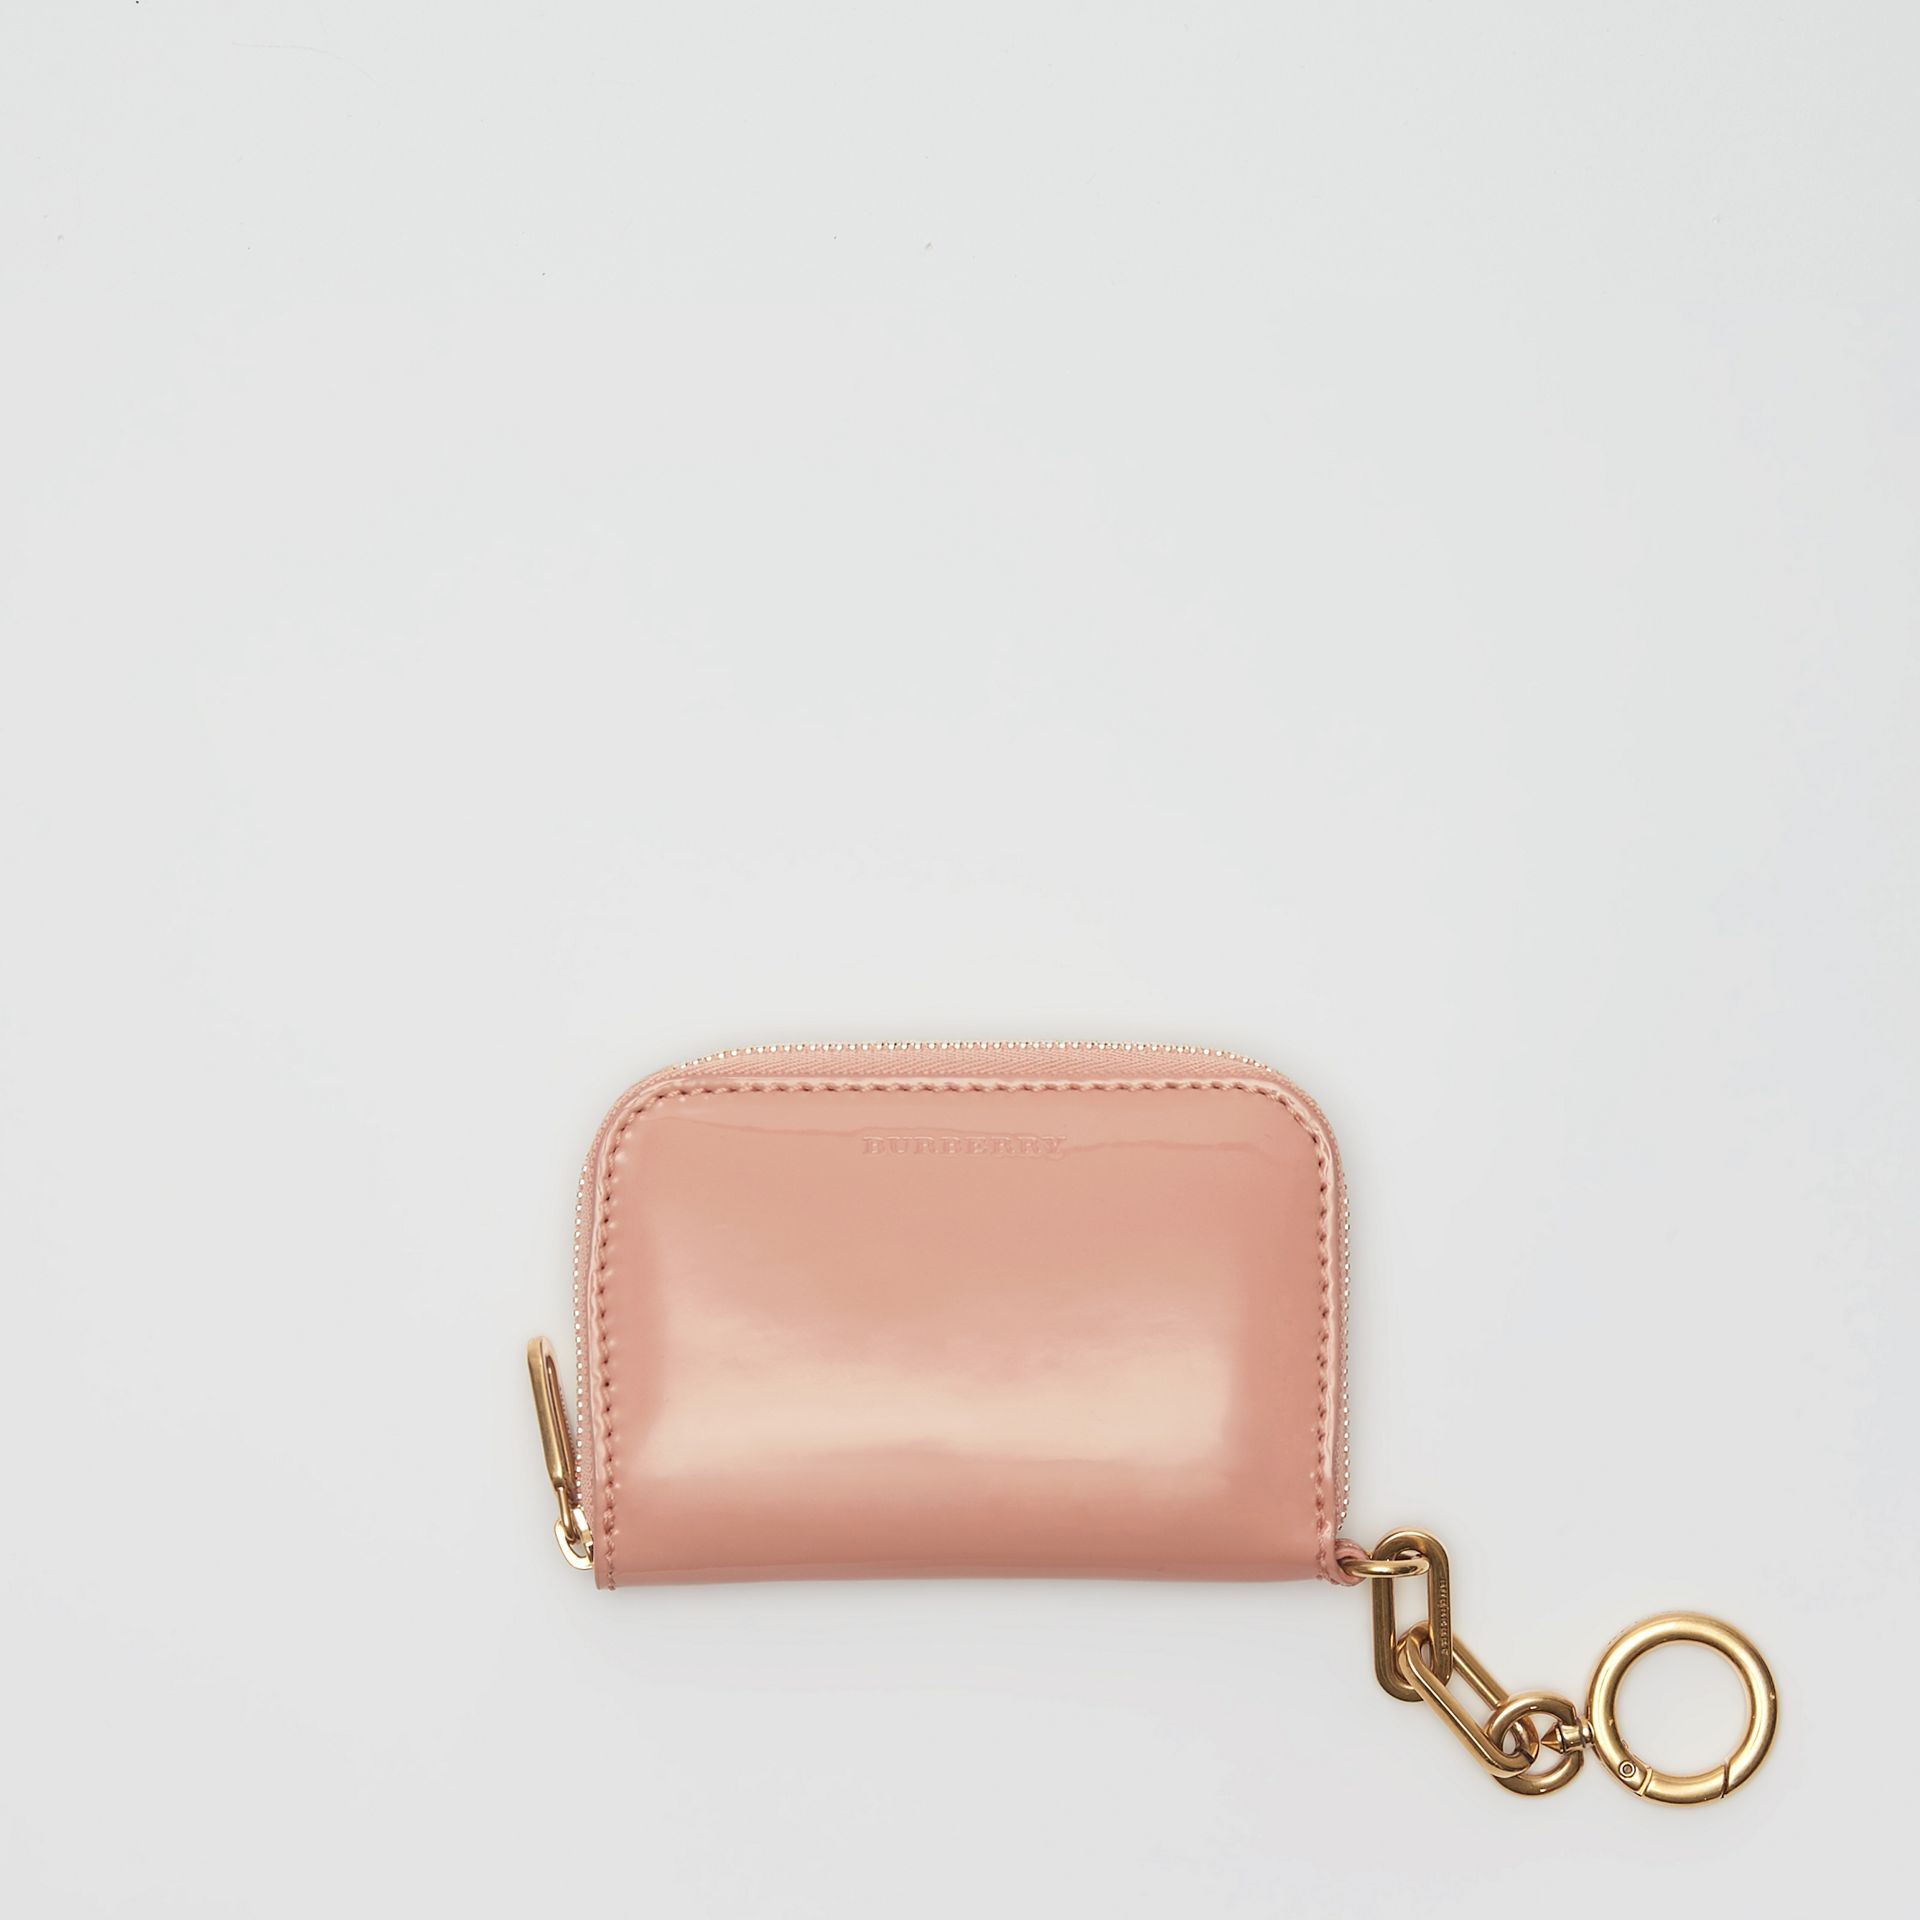 Link Detail Patent Leather Ziparound Wallet in Pale Fawn Pink - Women | Burberry Canada - gallery image 2